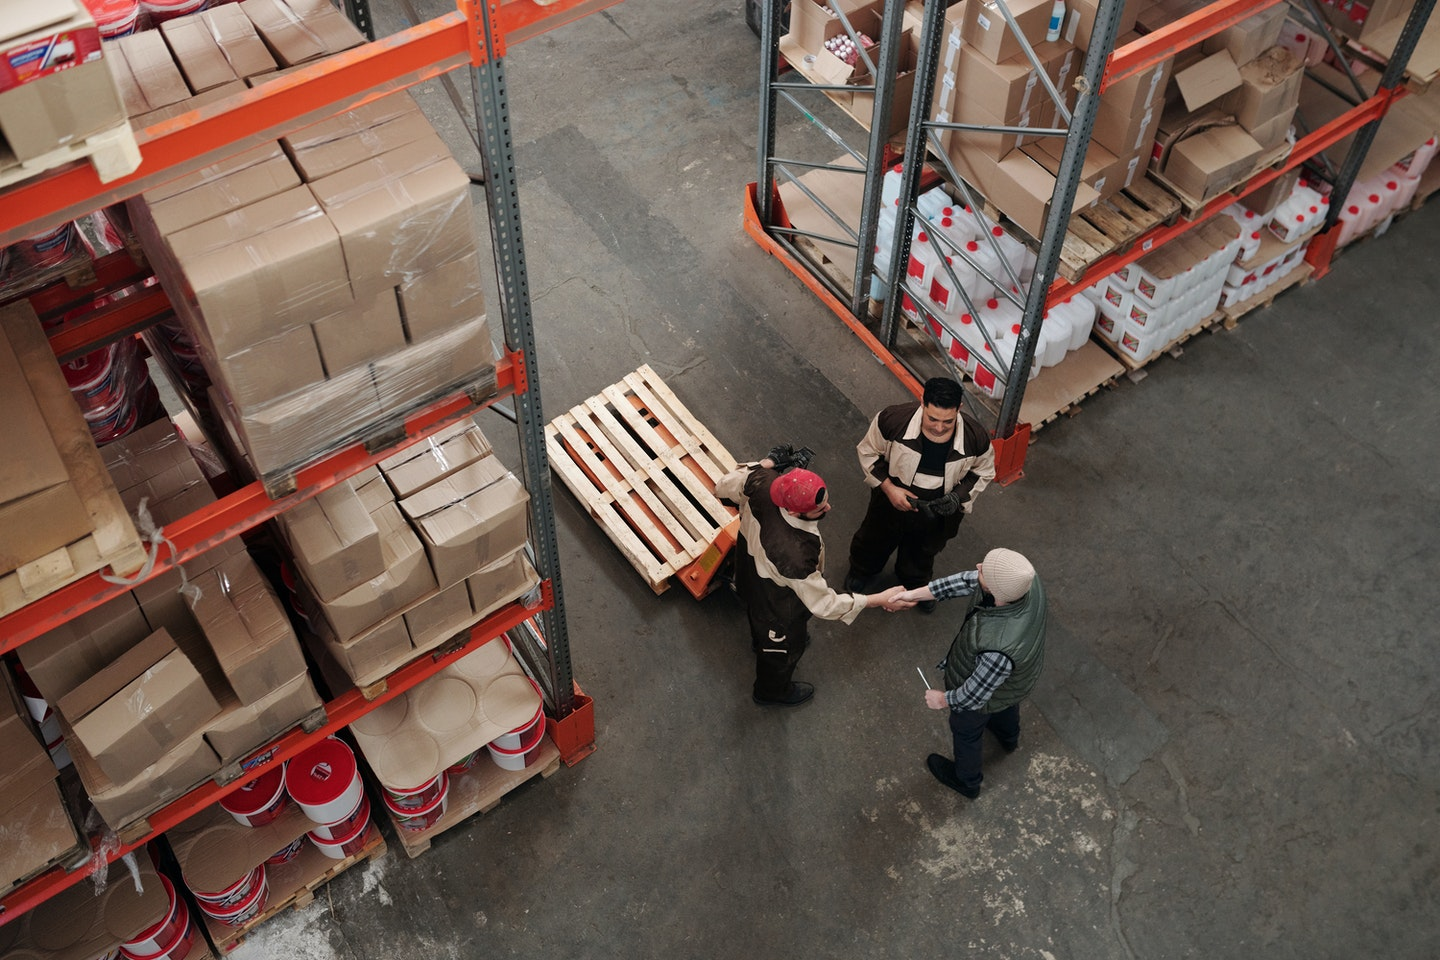 Warehouse workers in storage area